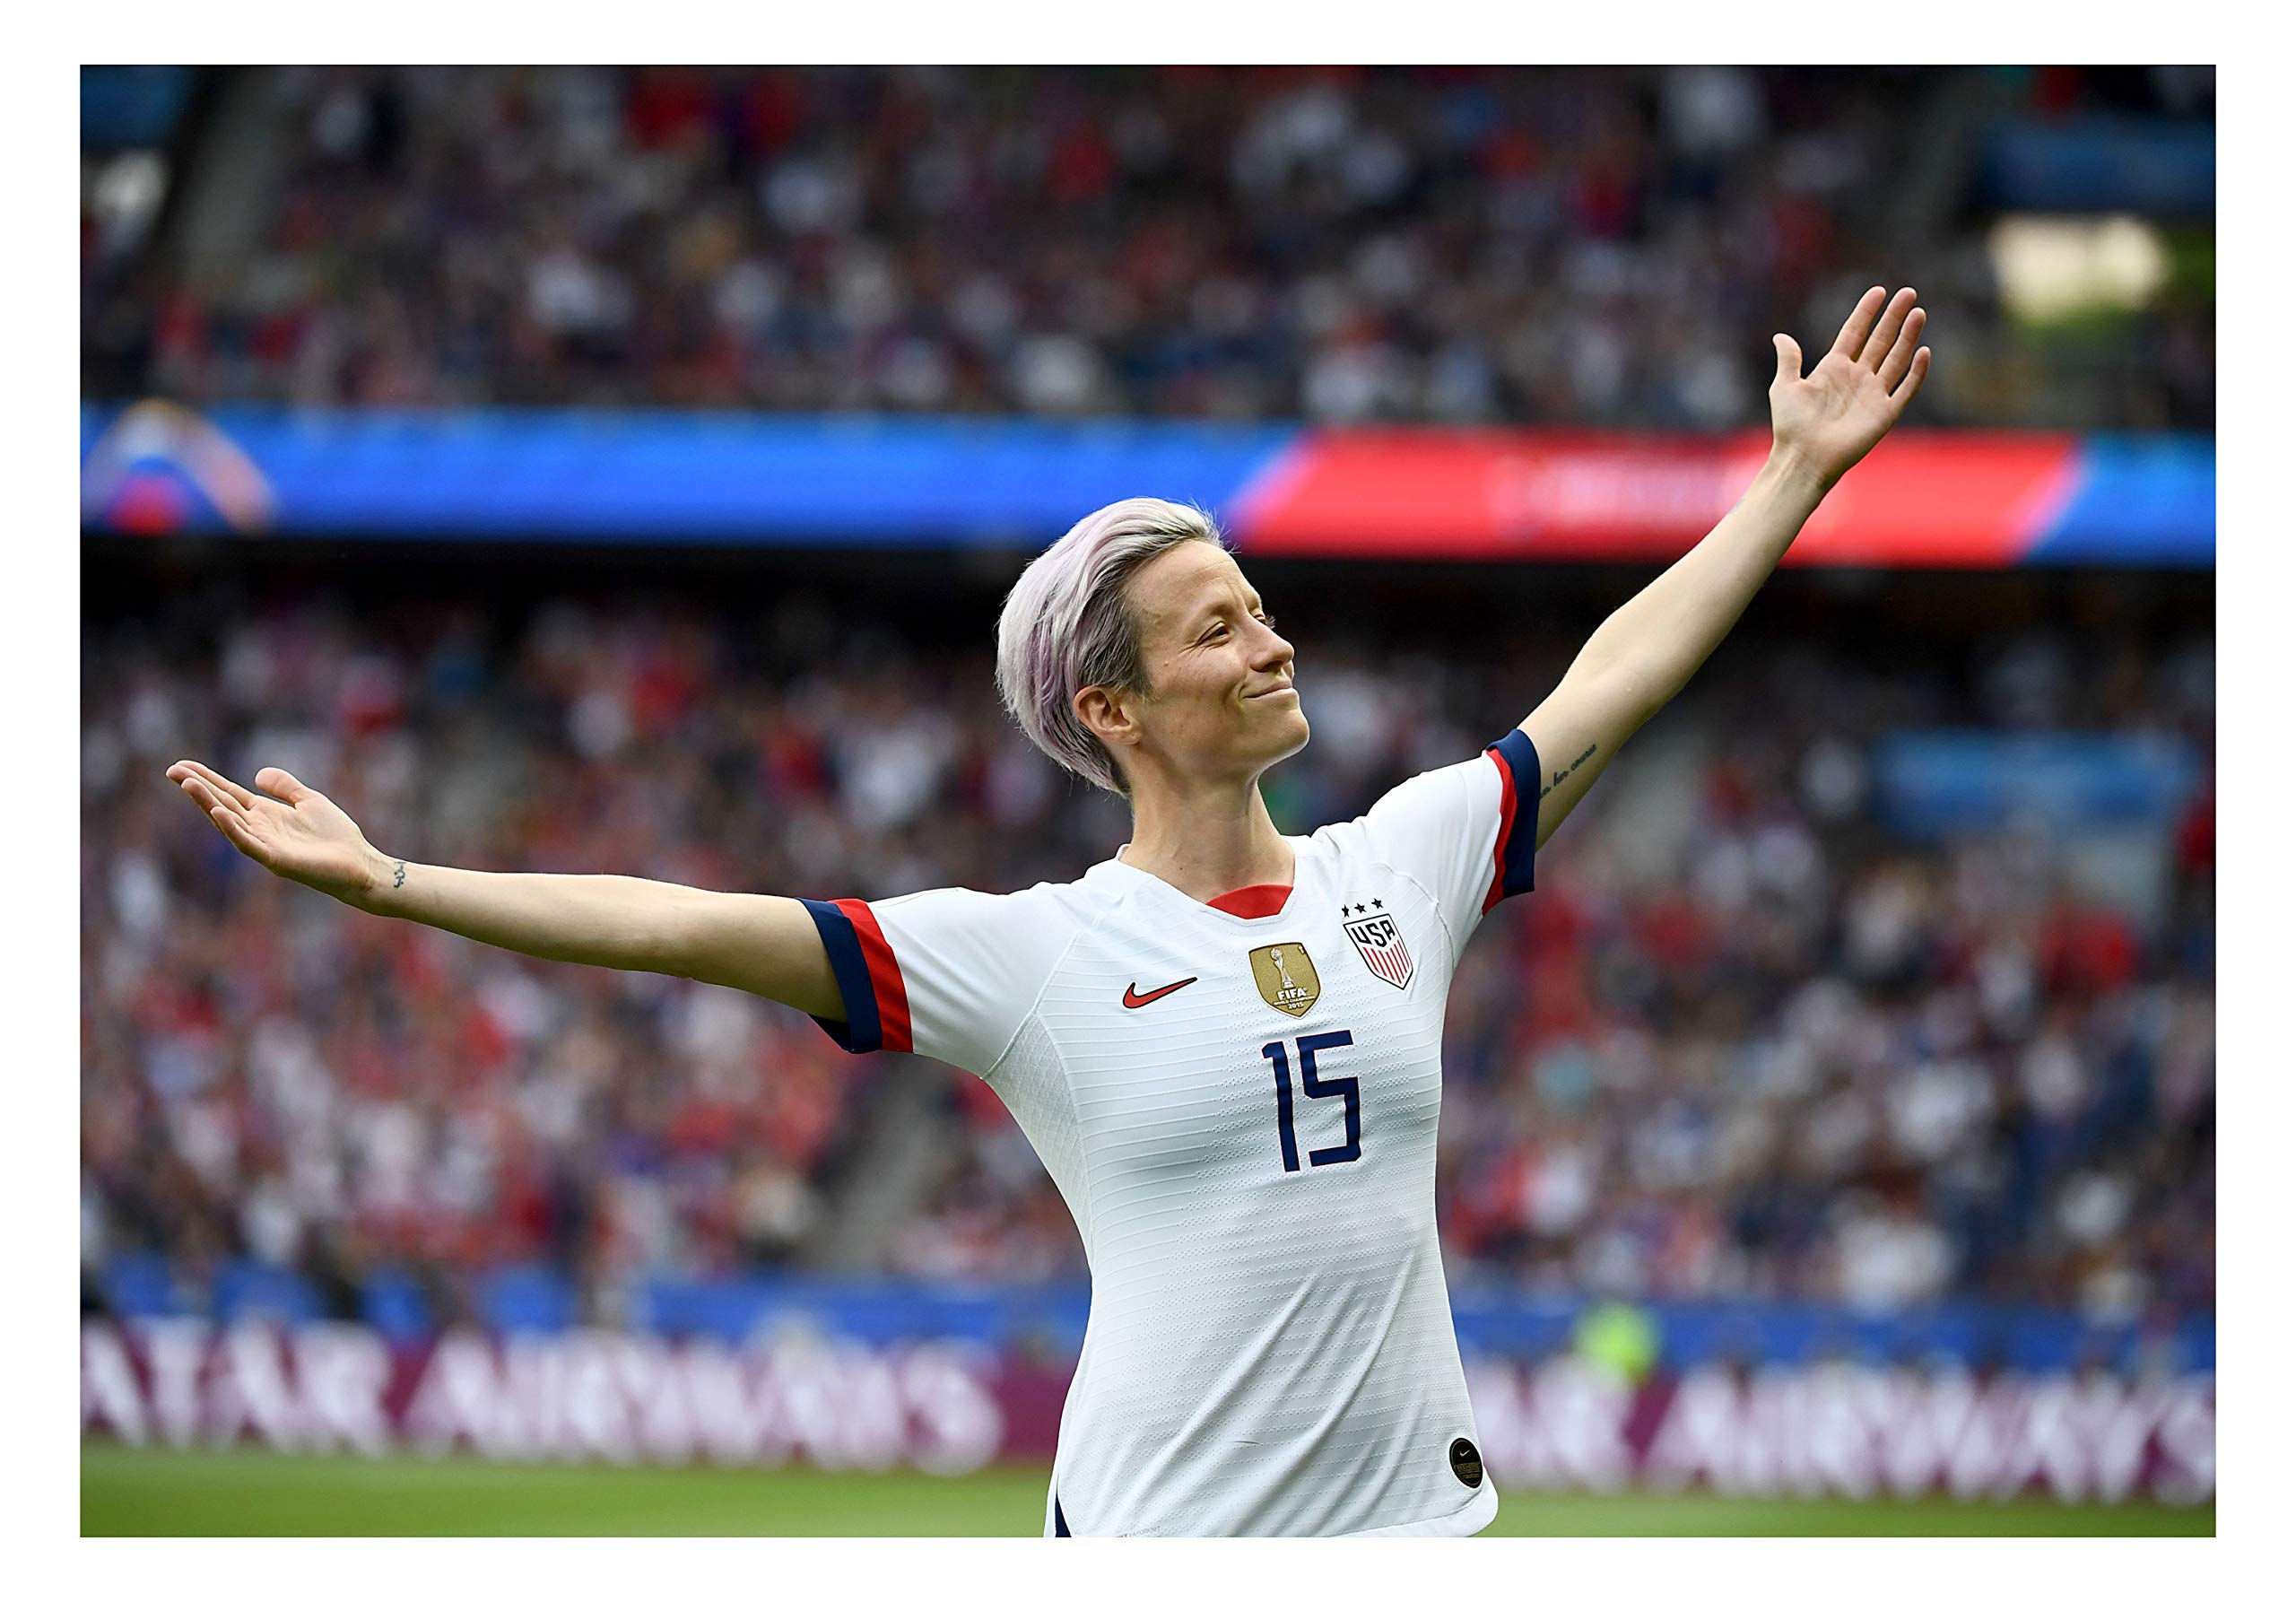 Megan Rapinoe Sports Poster Print Photo Wall Art Limited Celebrity USA Olympic World Cup Women's Soccer Team Athlete Size 8x10#2 by Fullfillment Posters